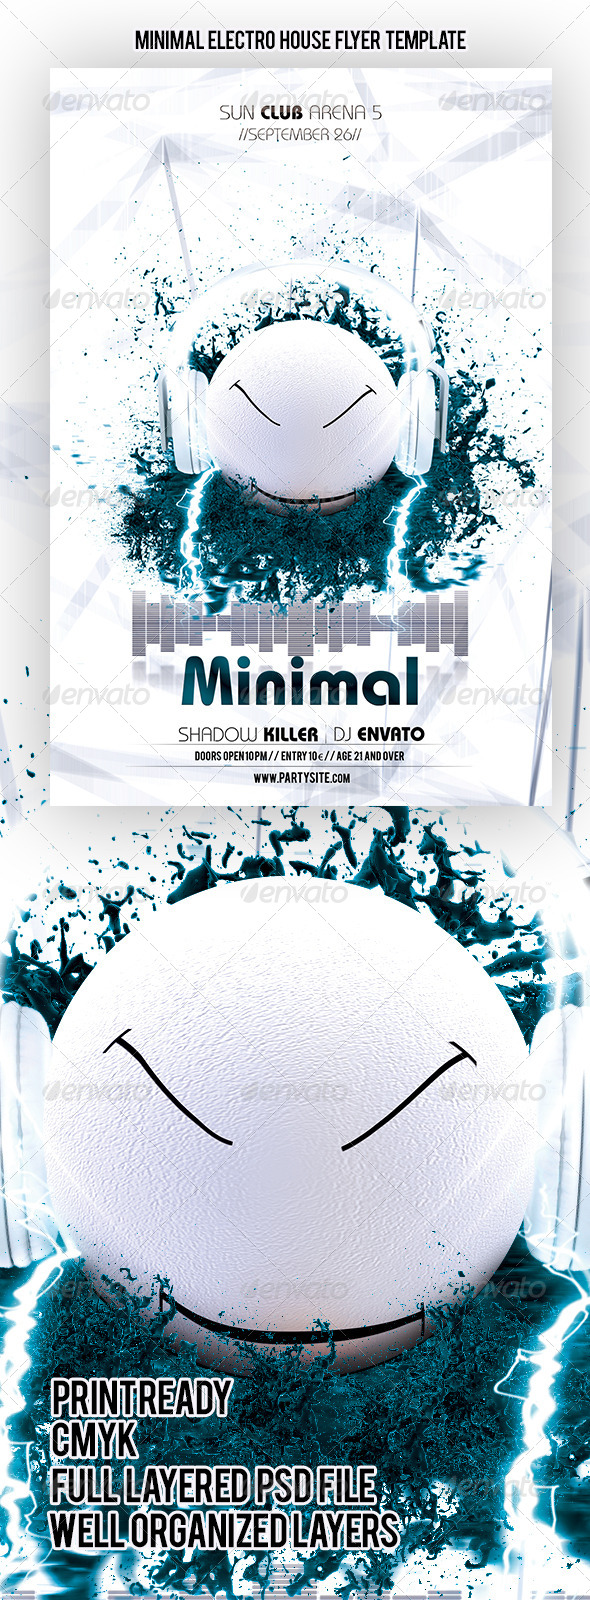 GraphicRiver Minimal Electro House Flyer Template 4619677